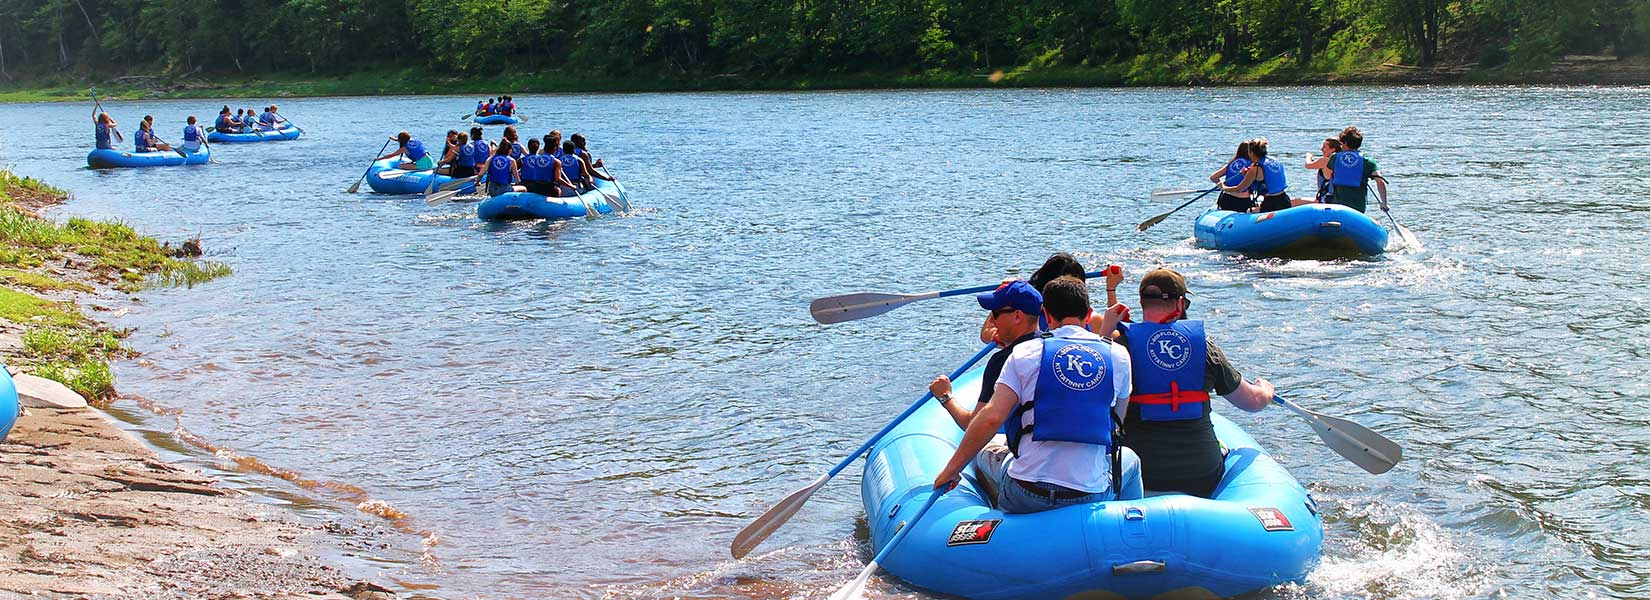 Rafting on the Deleware River